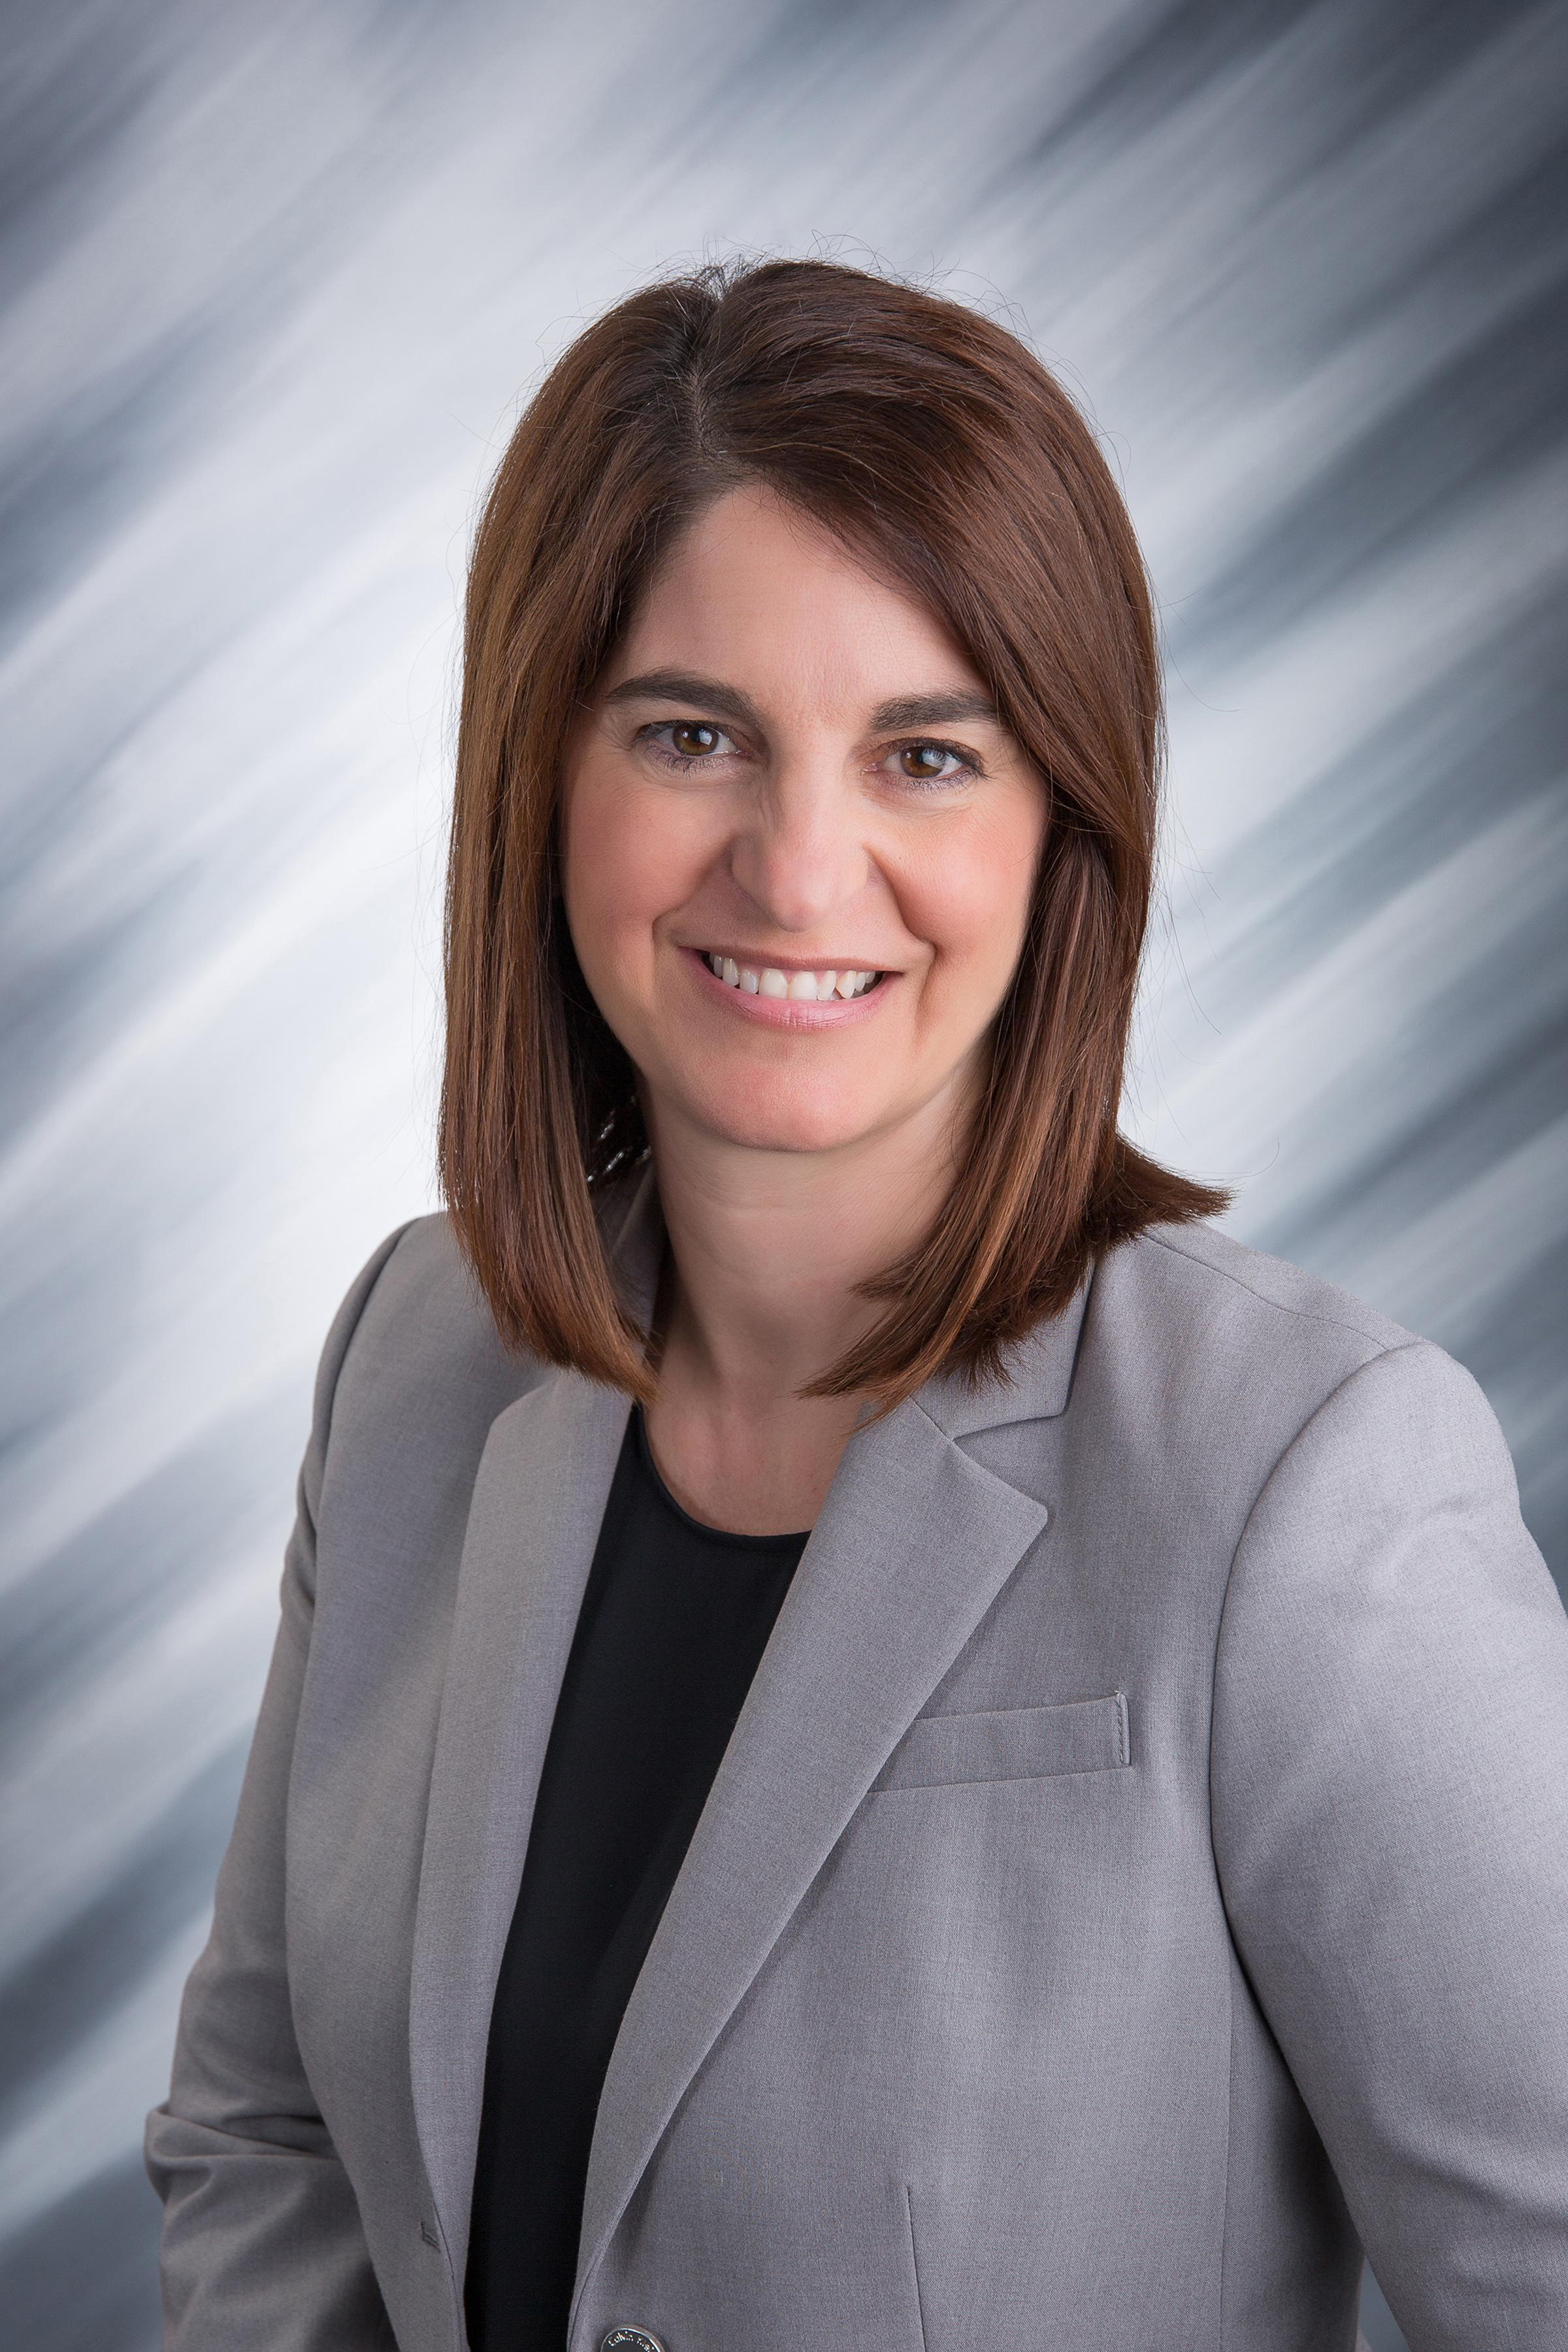 Dr. Rachel Savage, Incoming Superintendent